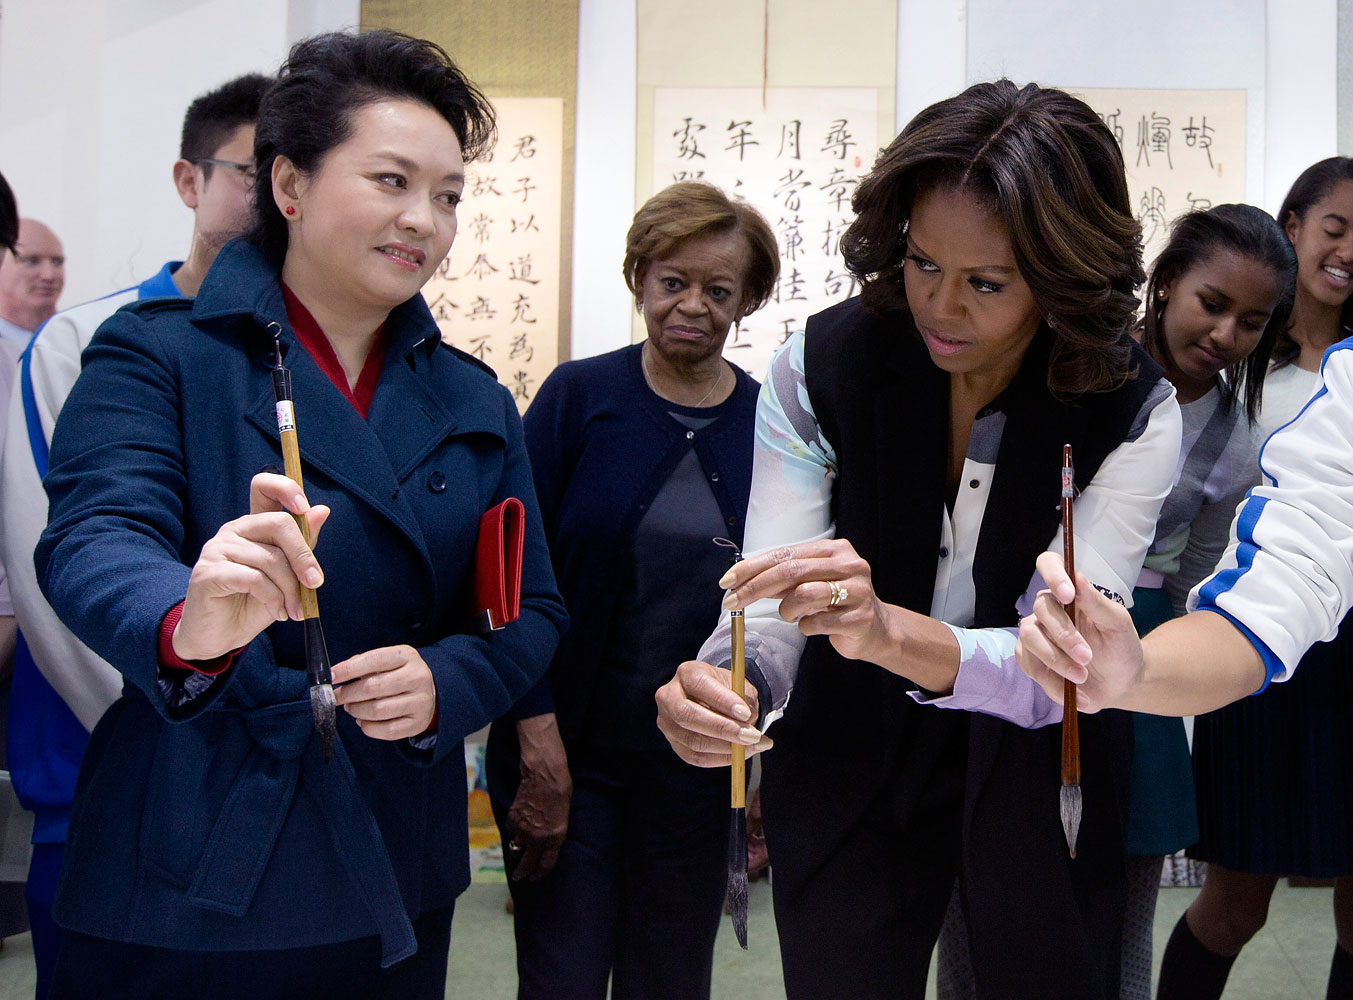 Peng Liyuan, wife of Chinese President Xi Jinping shows U.S. first lady Michelle Obama how to hold a writing brush as they visit a Chinese traditional calligraphy class at the Beijing Normal School, a school that prepares students to go abroad in Beijing, March 21, 2014.